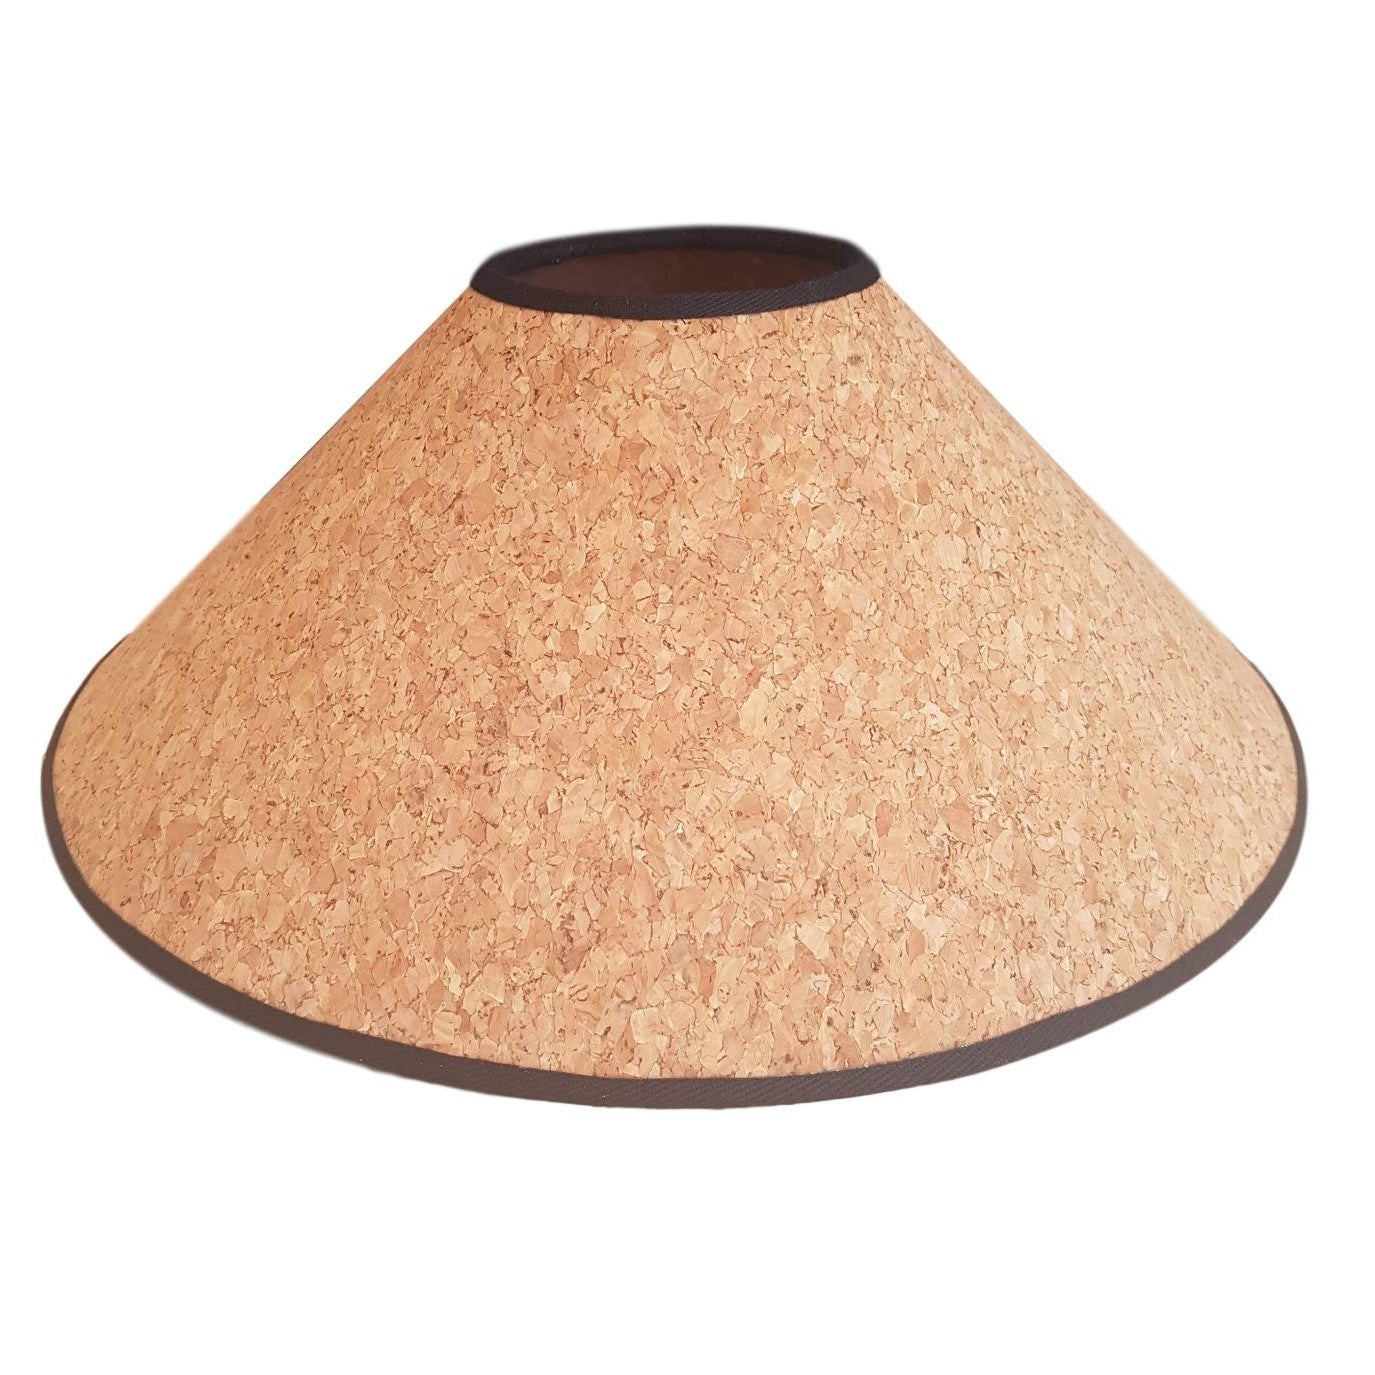 Munro and Kerr handmade cork lampshade with white natural navy black red trim